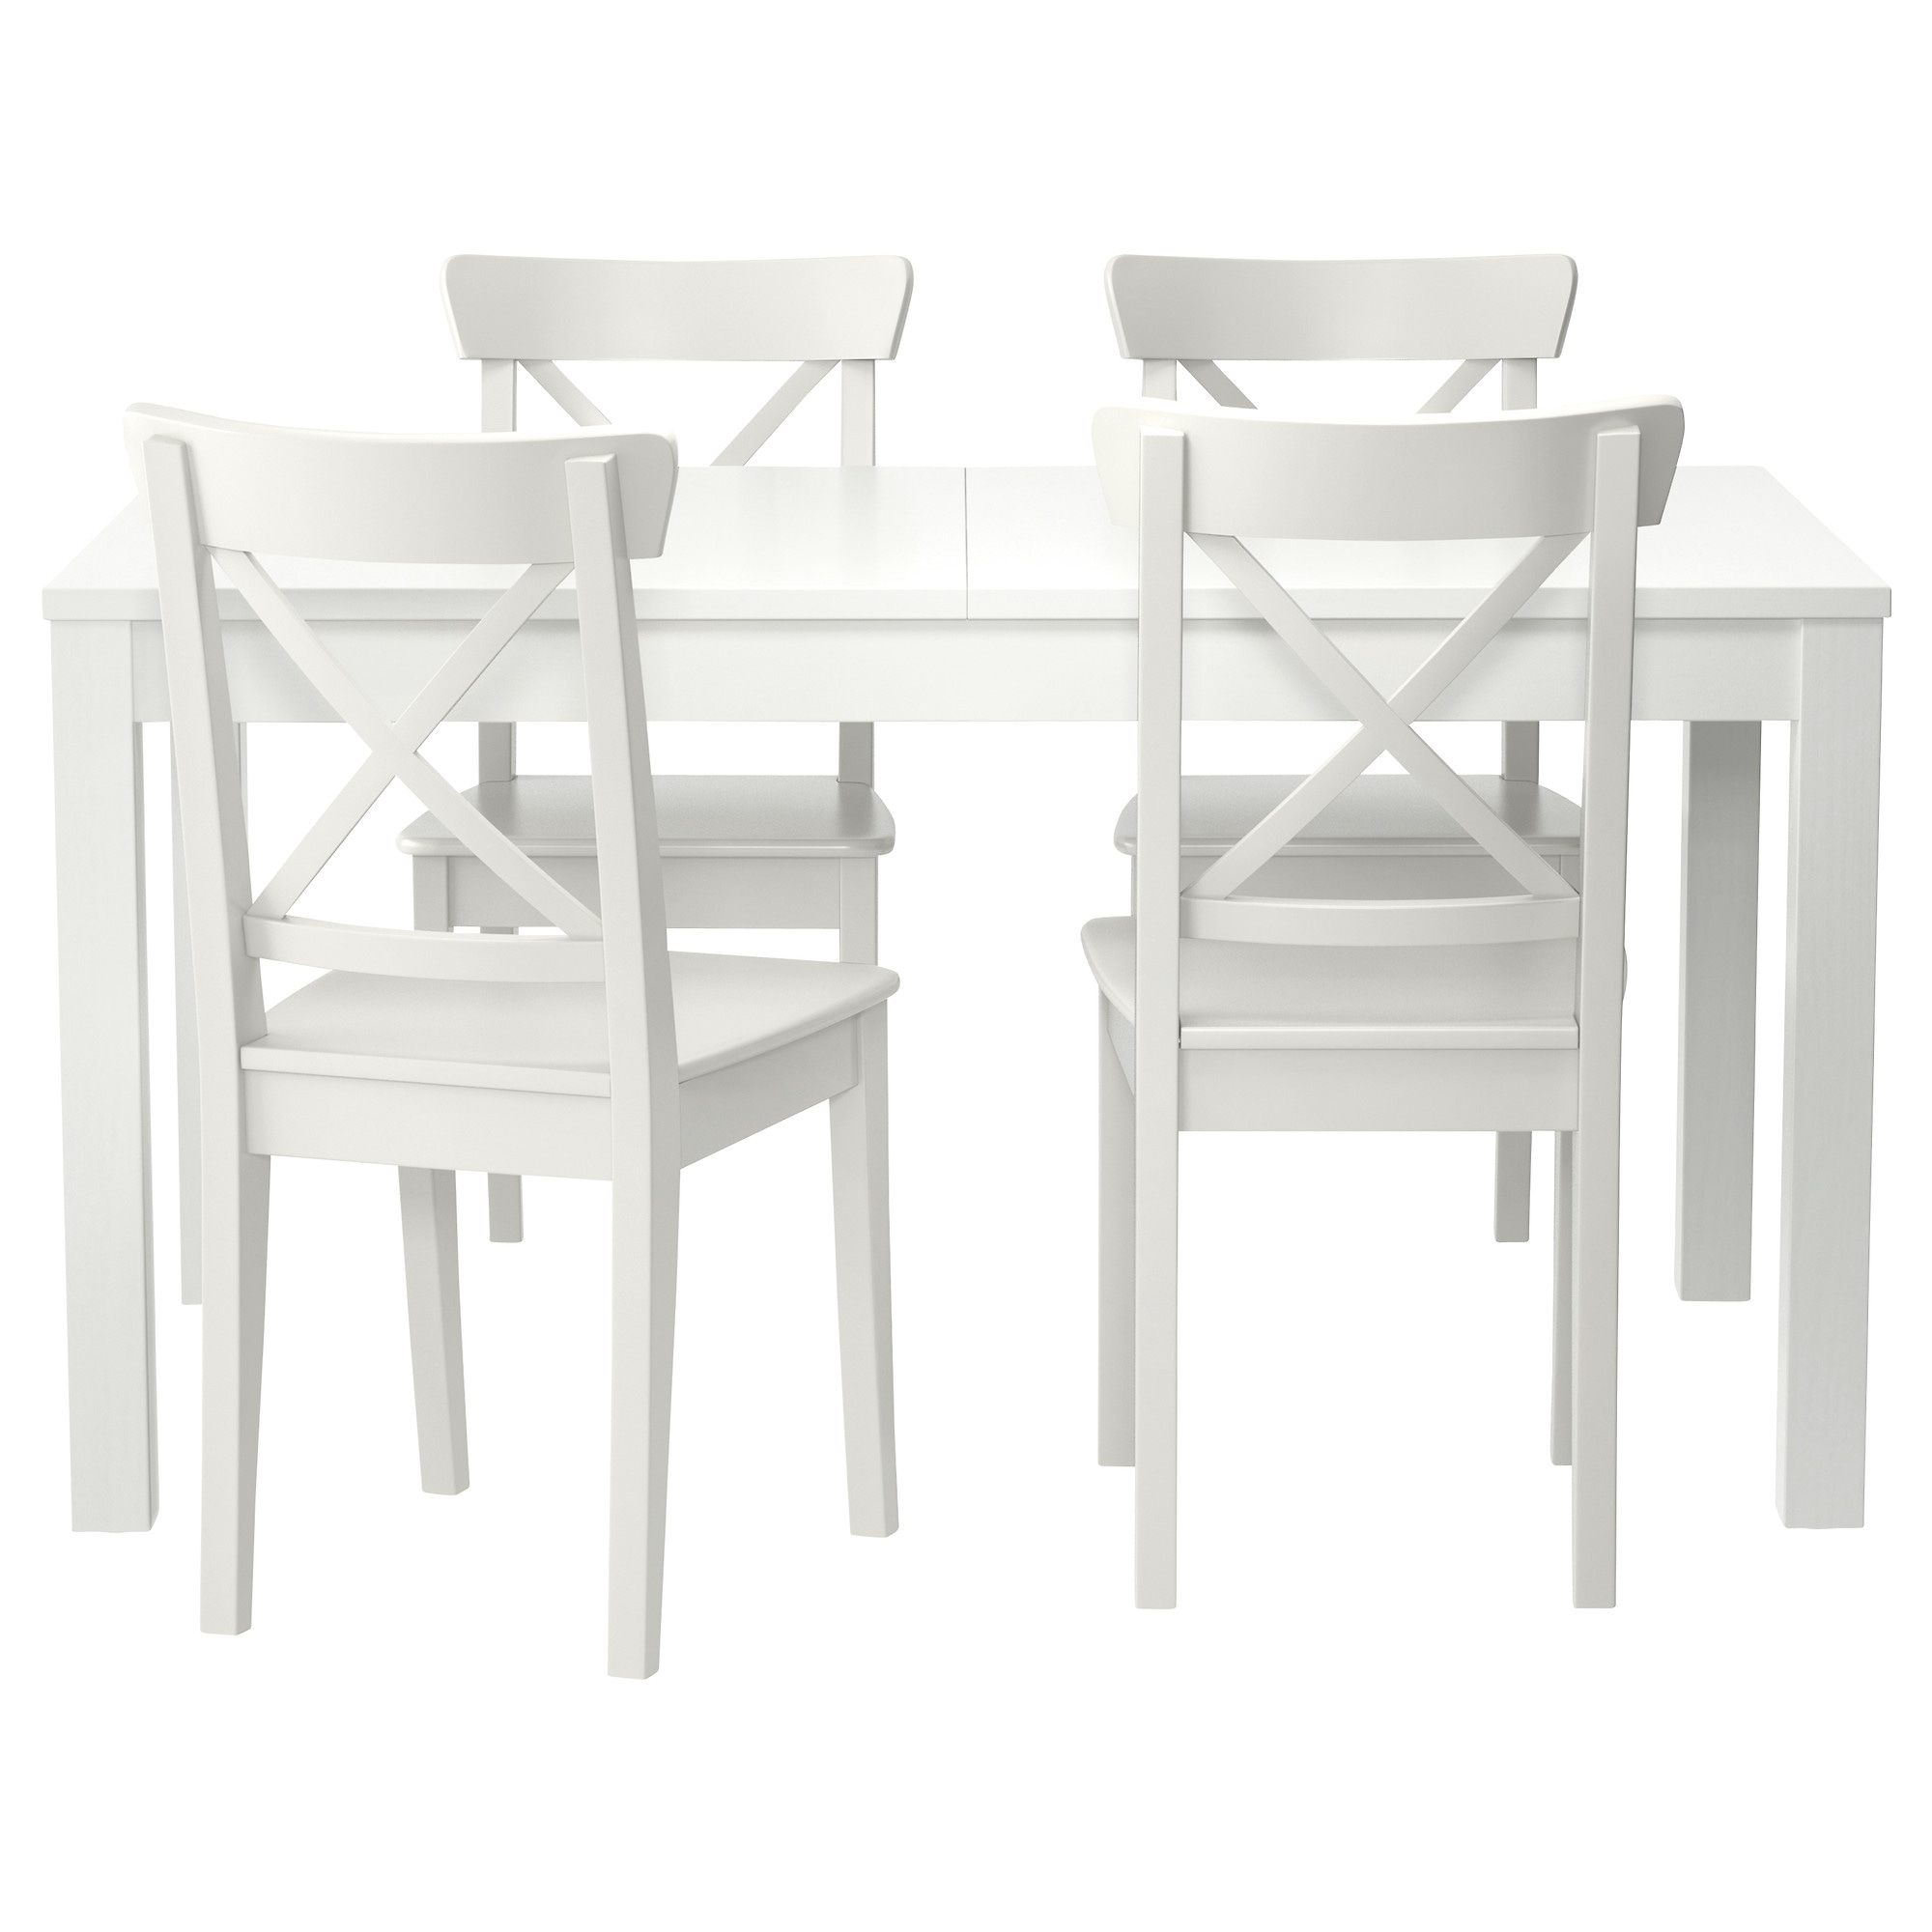 ikea white dining table and chairs furniture design. Black Bedroom Furniture Sets. Home Design Ideas